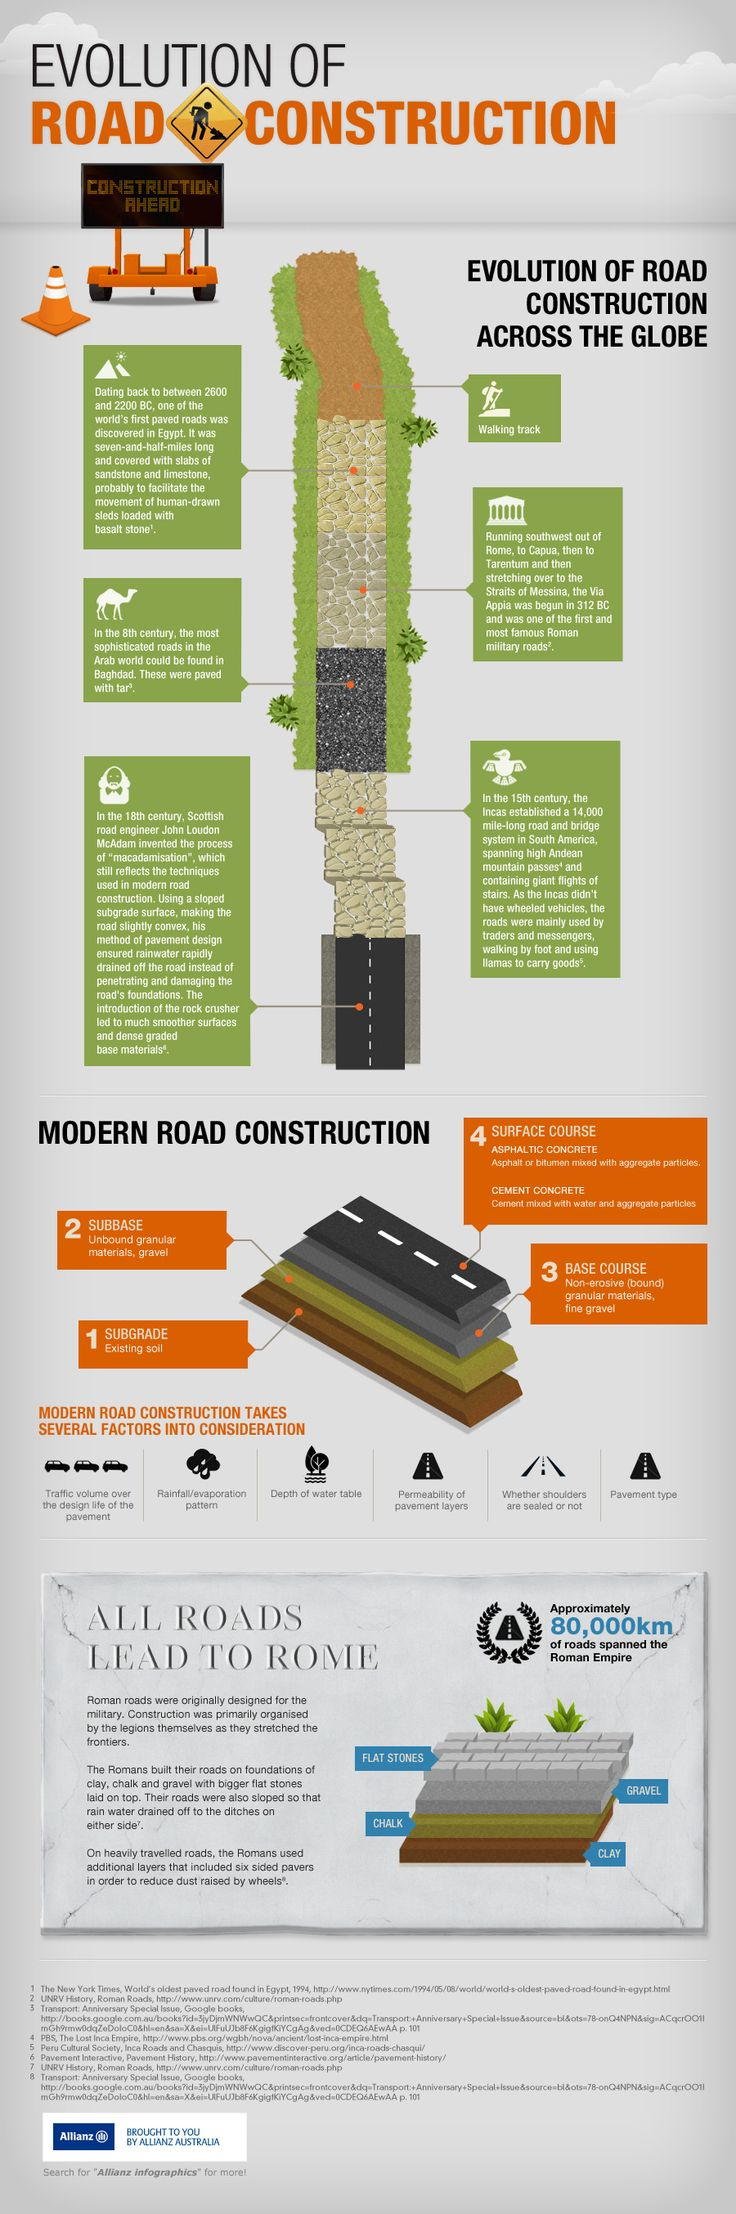 allianz-car-insurance-infographic-road-construction.jpg (900×2708)